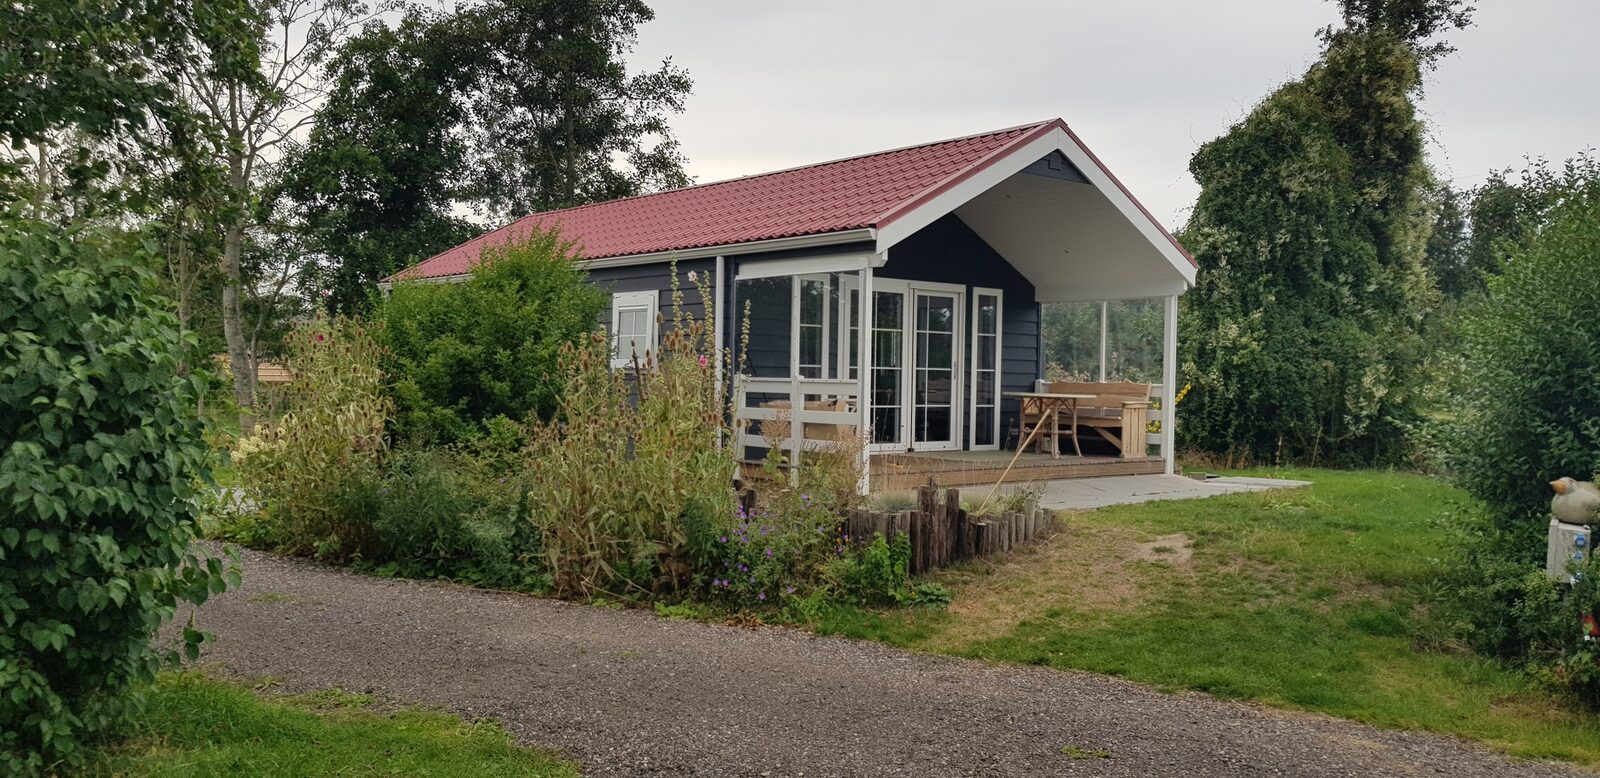 Lodge Landerij